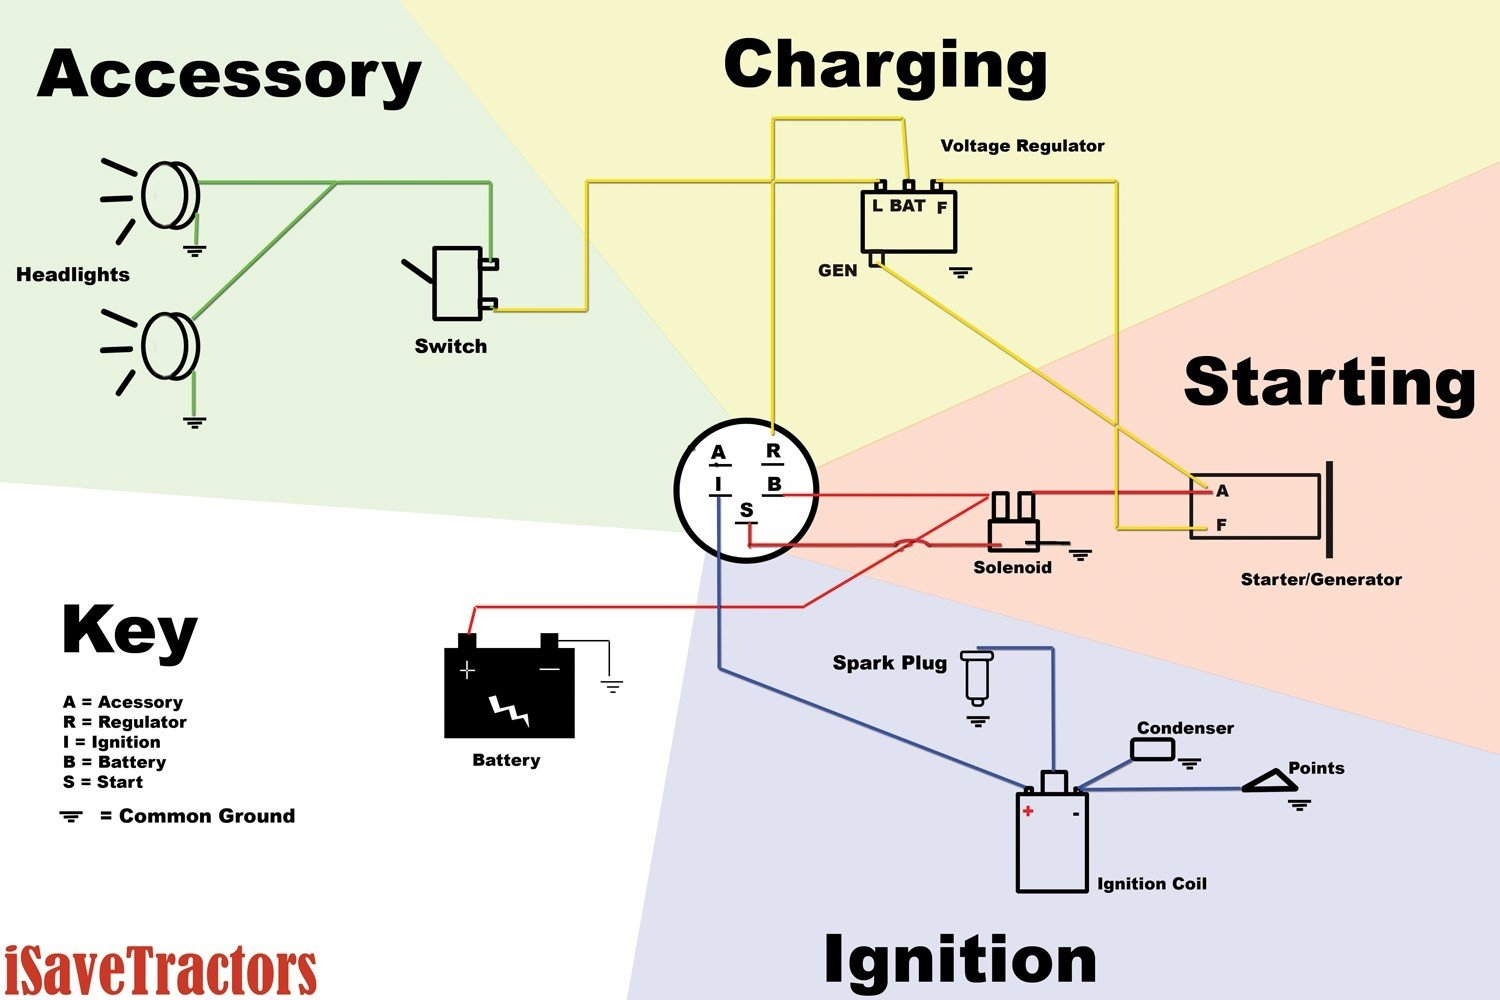 5 Prong Ignition Switch Diagram - Wiring Diagrams Hubs - Chevy Ignition Coil Wiring Diagram